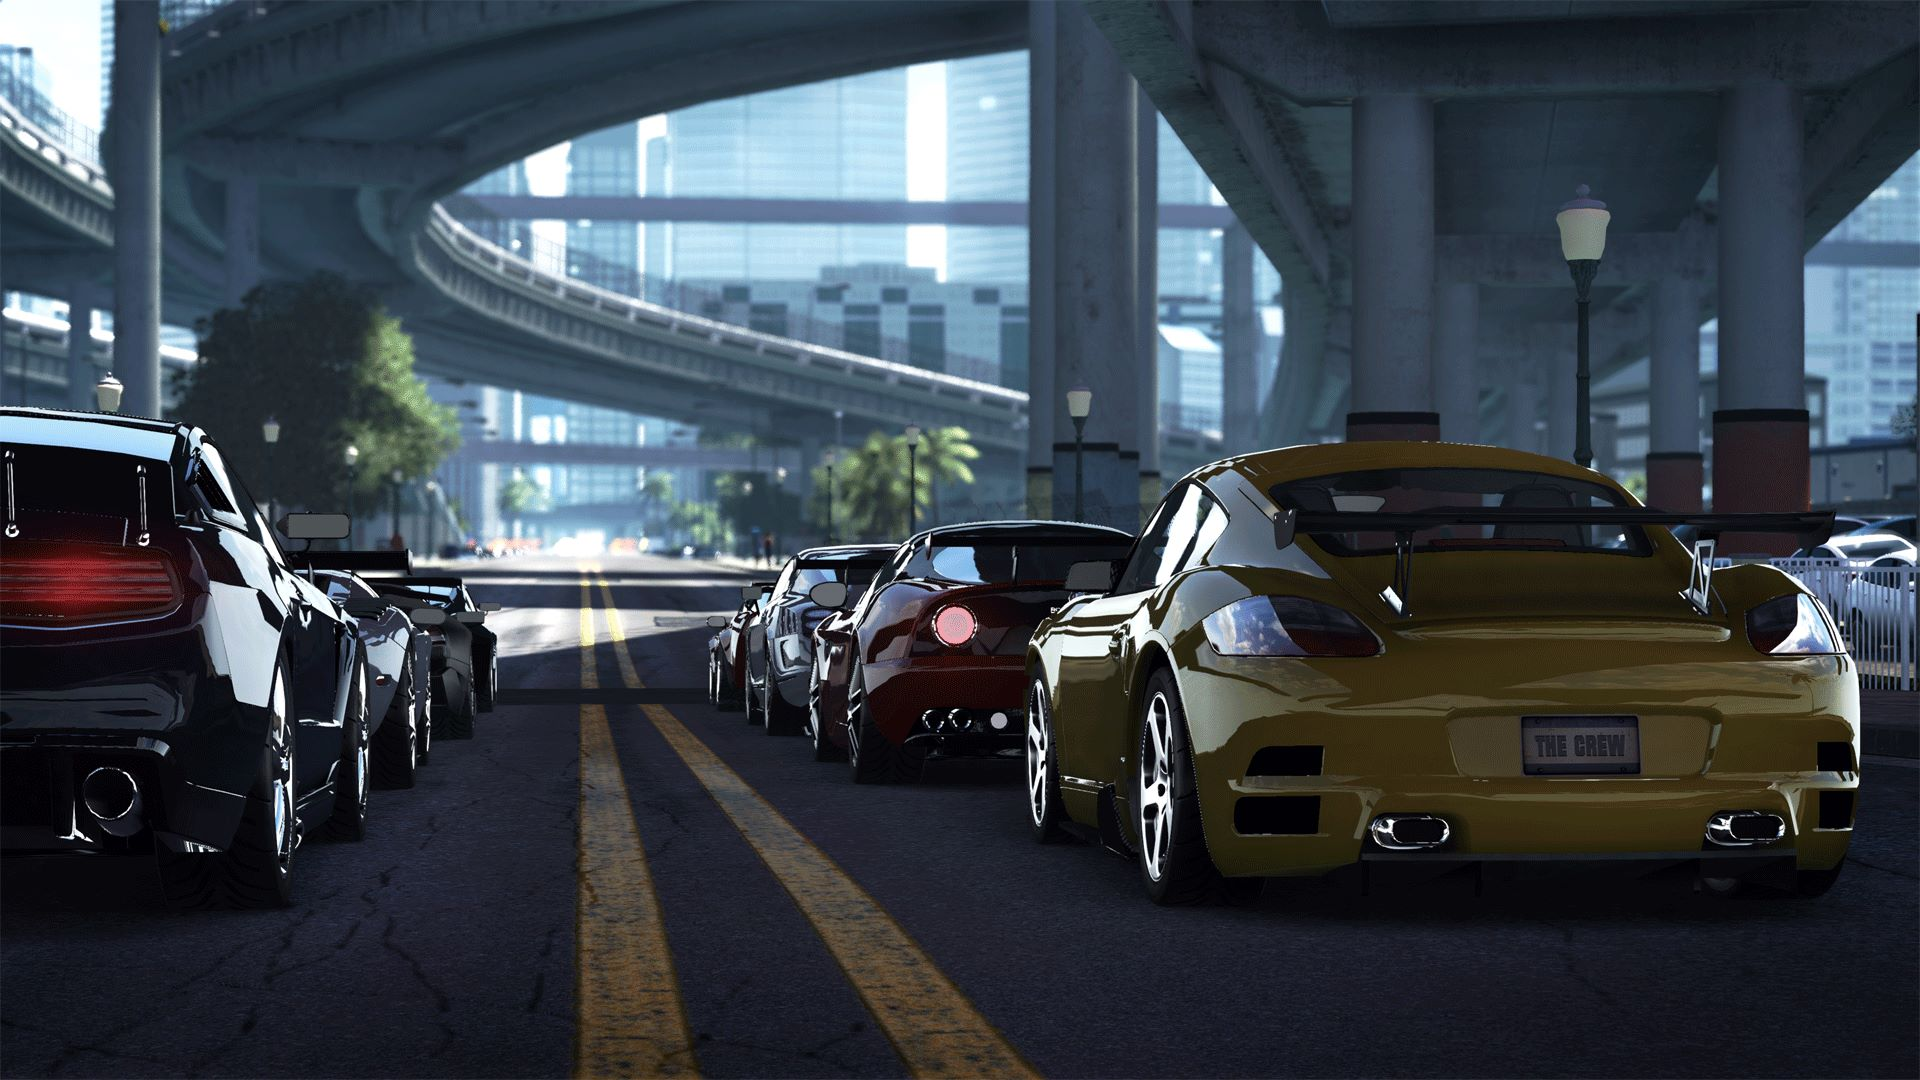 <b>The Crew Wallpaper</b> Group with 55 items